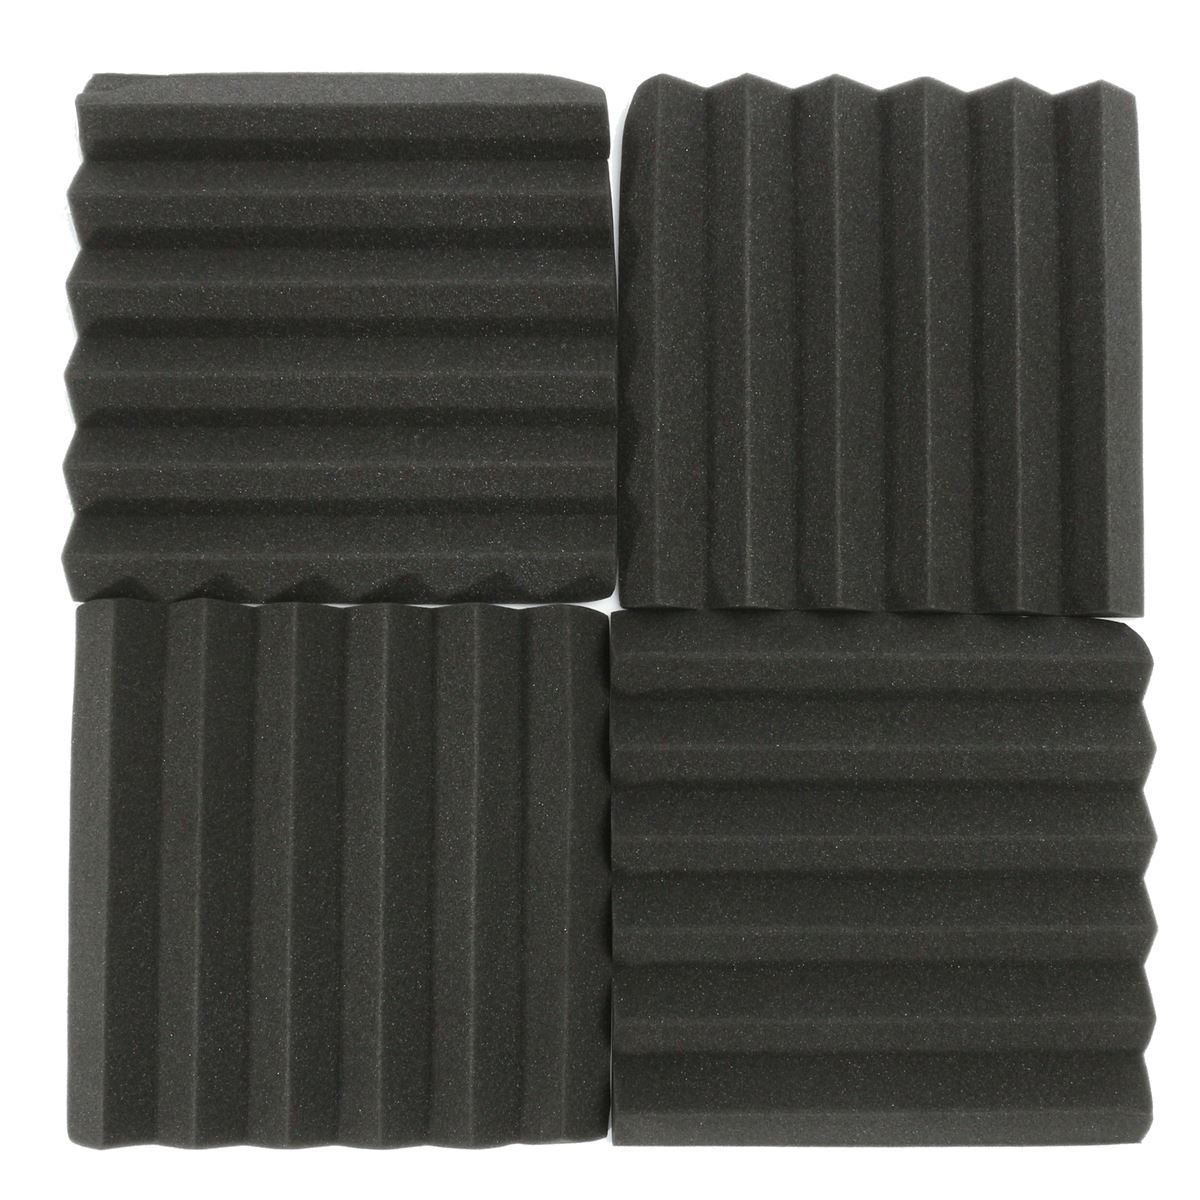 8 Pcs Sound Insulation Foam Acoustic Foam Sound Treatment Studio Room Absorption Wedge Foam-MUSIC